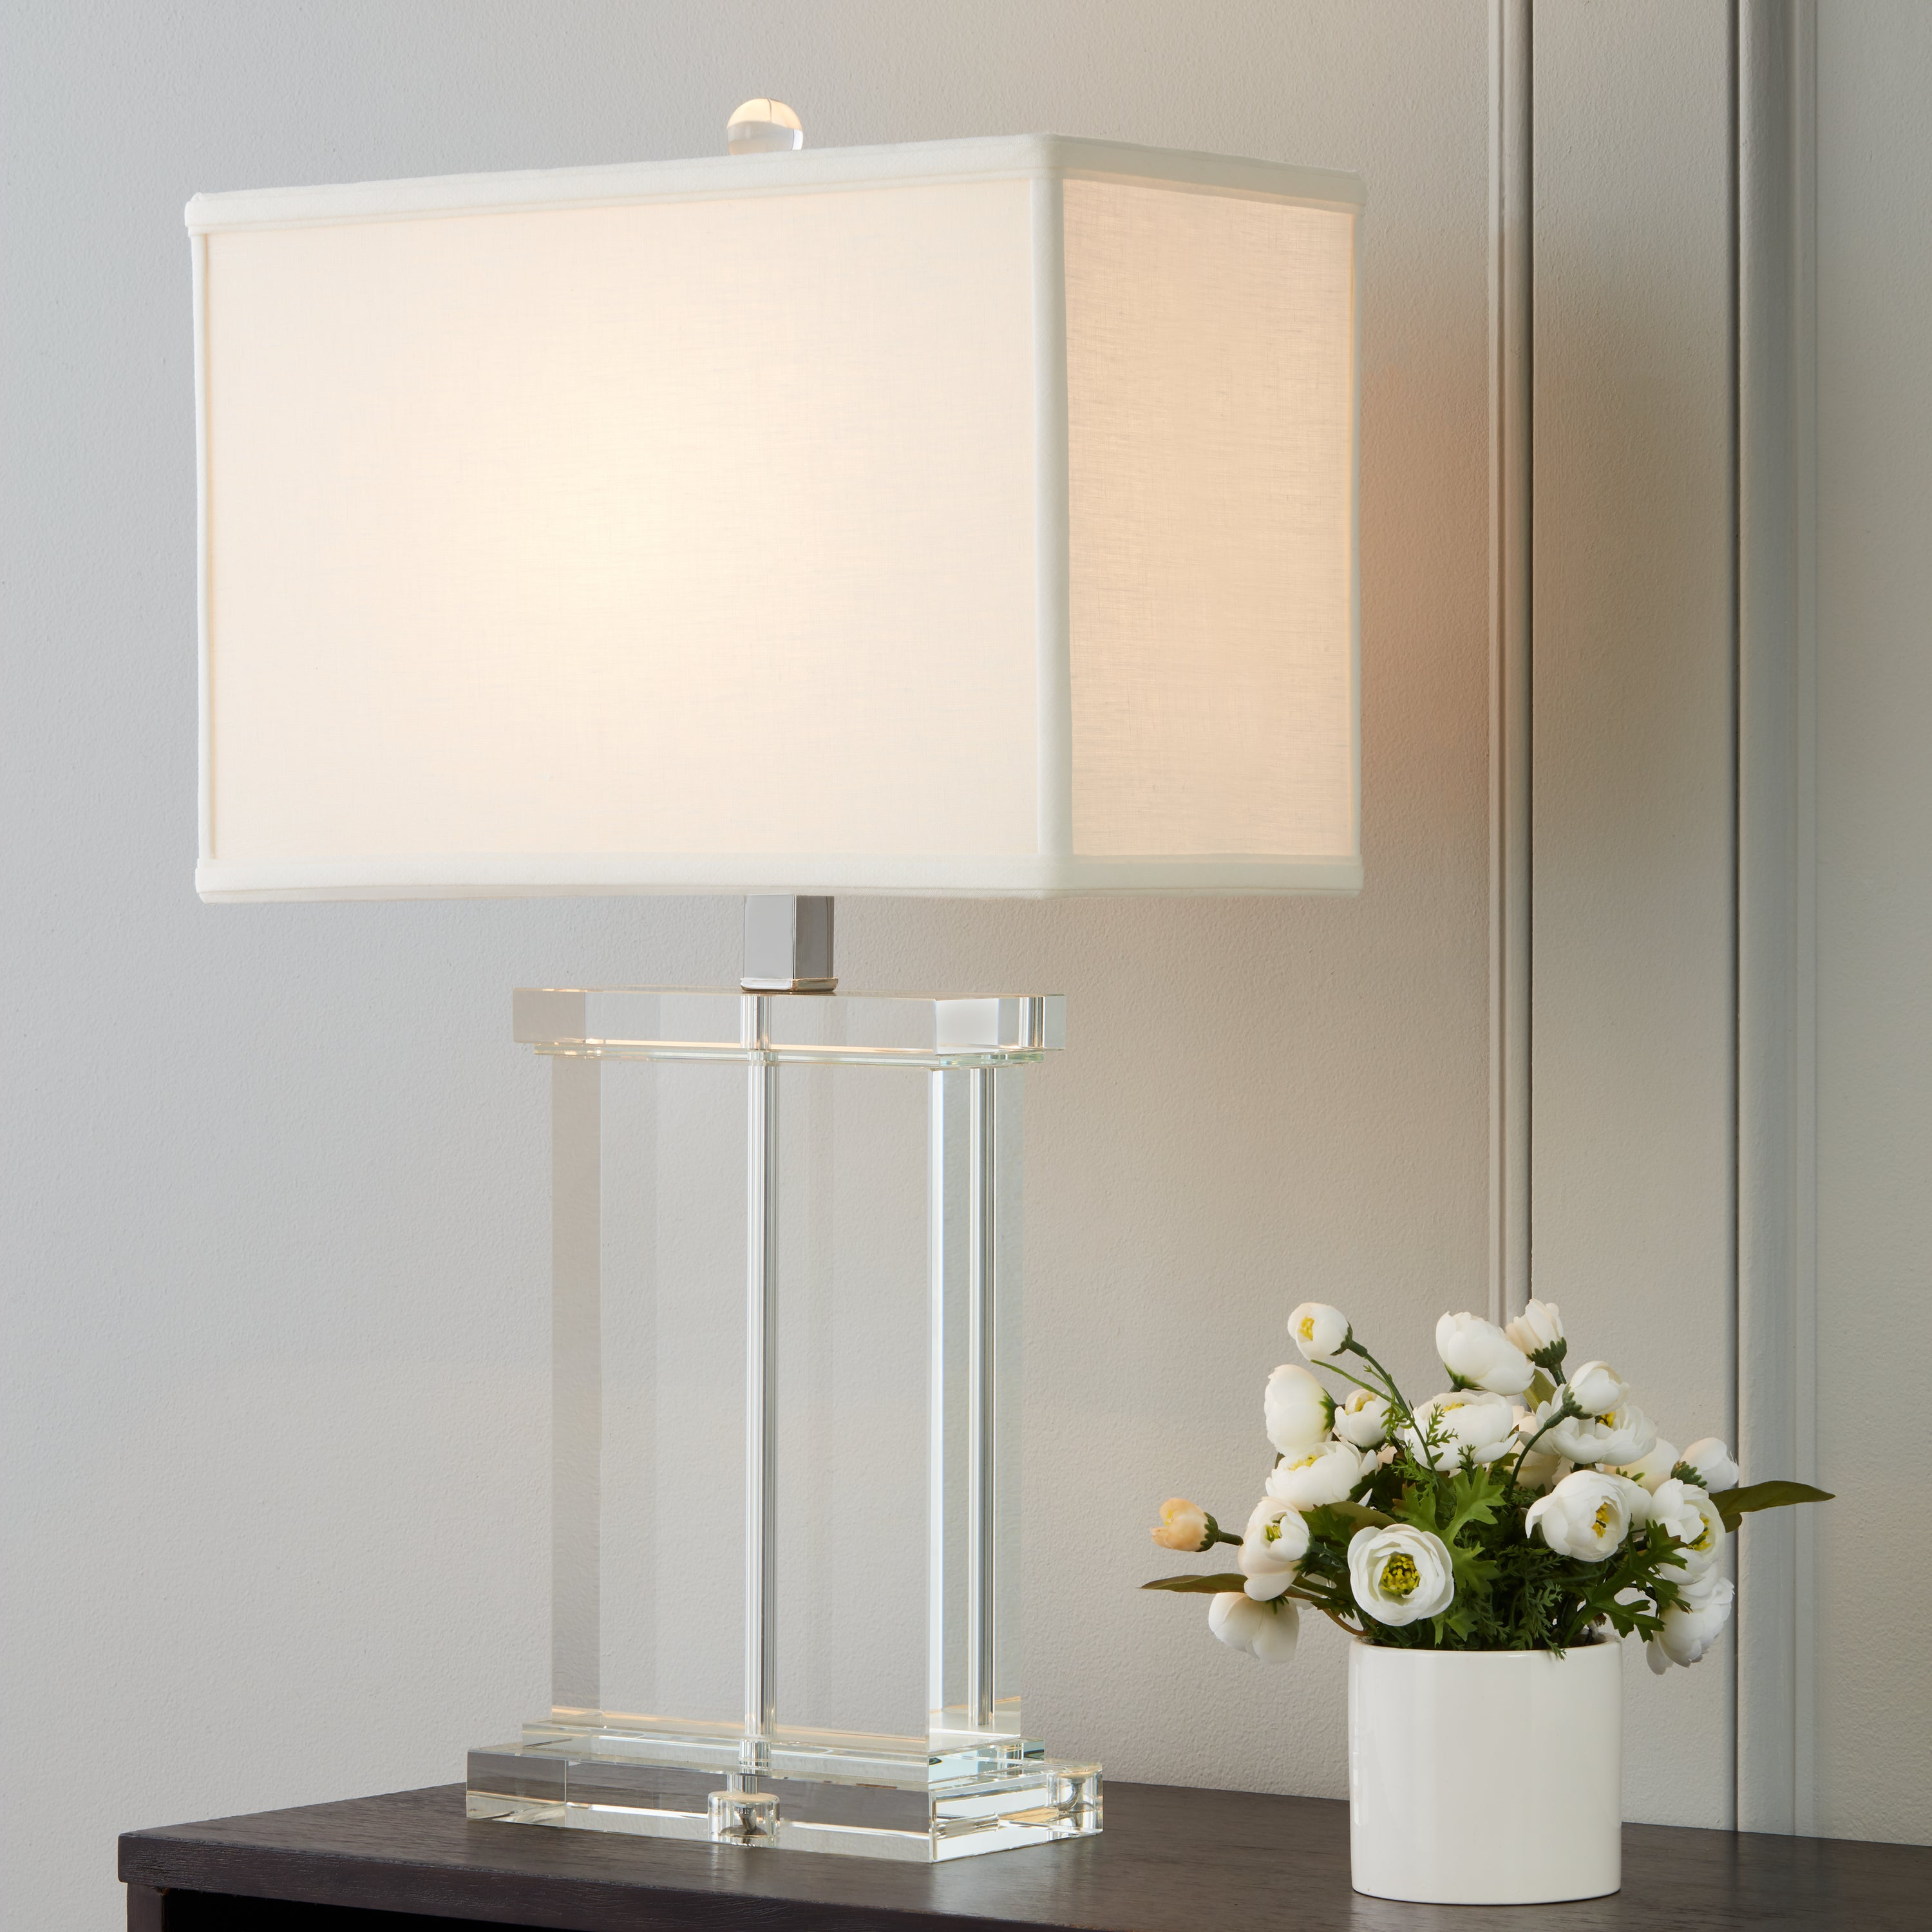 Silver Orchid Crystal Rectangular White Fabric Shade Chrome Based Contemporary Table Lamp Overstock 6911434